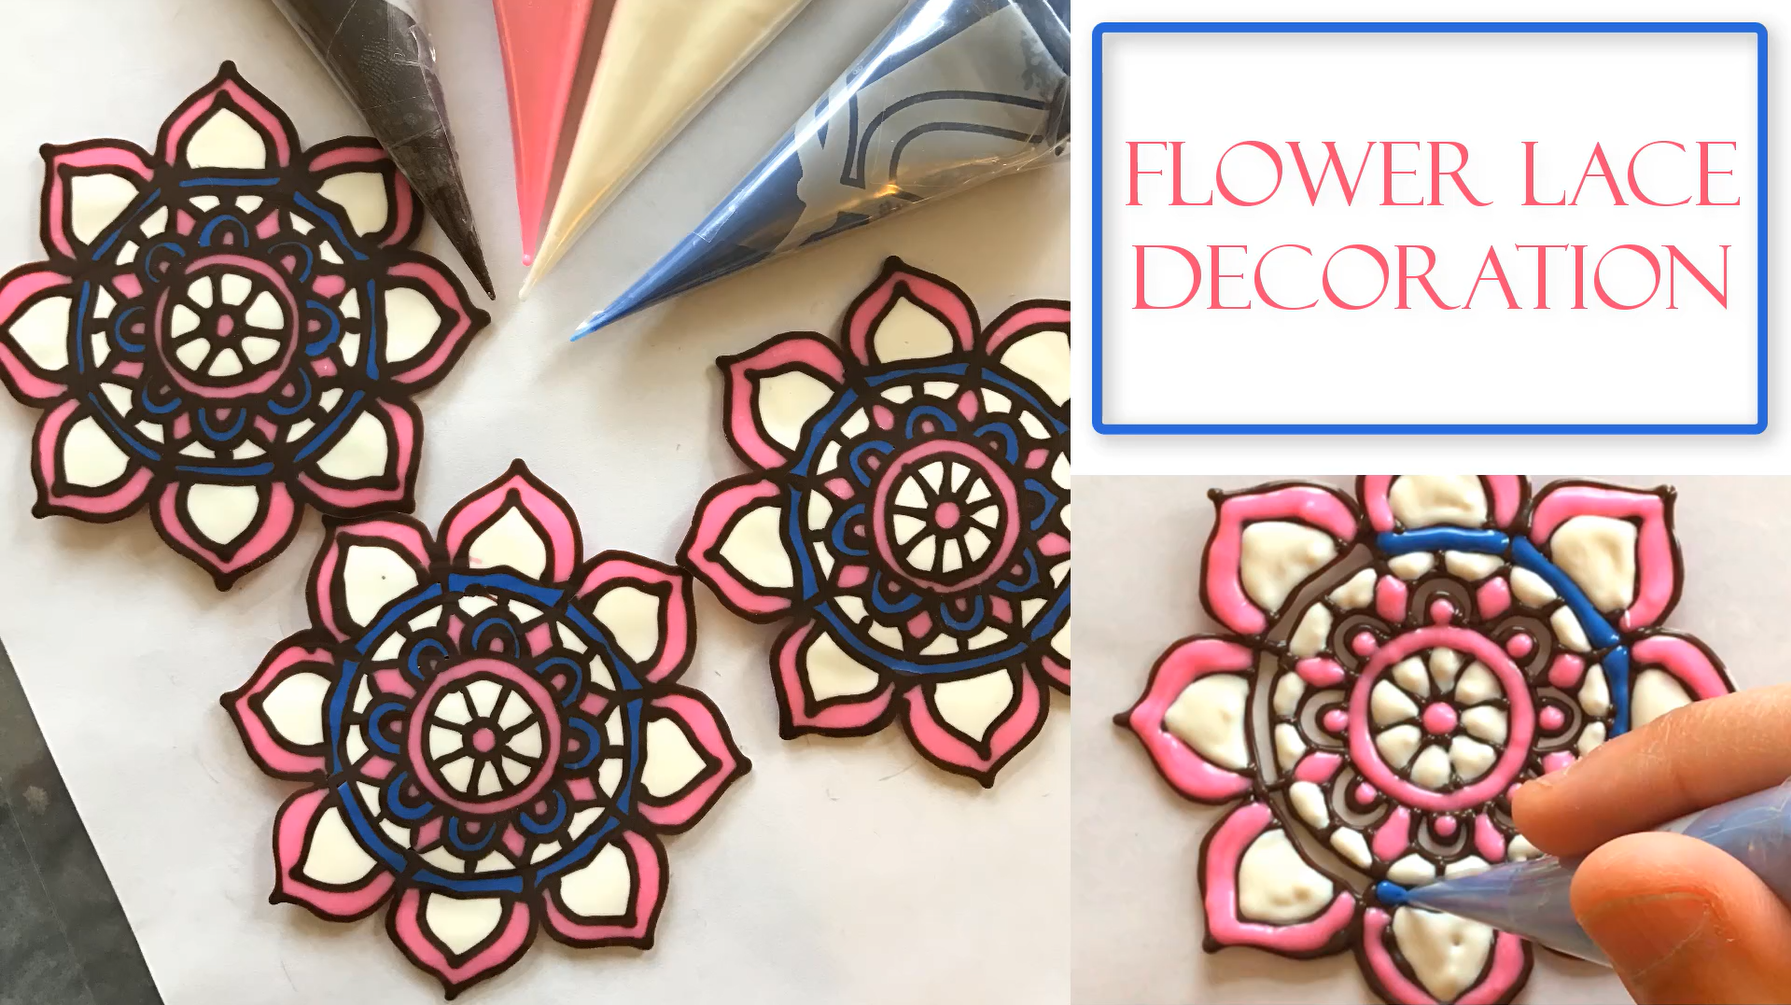 How To Make Chocolate Lace Flower Decorations Using Wilton Candy Melts I Made These A Template Which Then Traced With